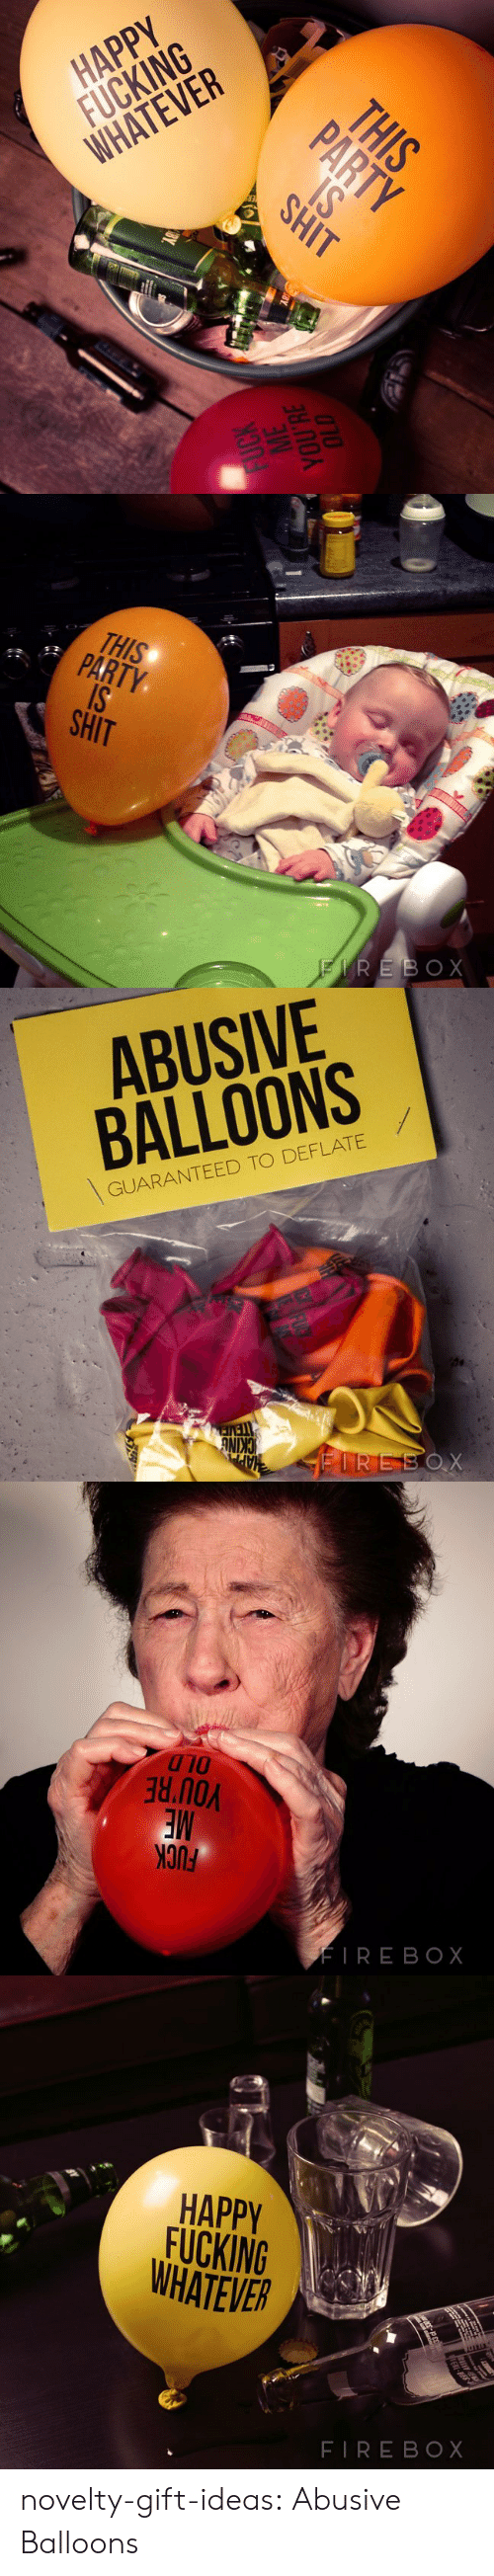 deflate: HAPPY  FUCKING  WHATEVER   THIS  Tx  SHIT   ABUSIVE  BALLOONS  GUARANTEED TO DEFLATE  NIN   010  no  FIRE BOX   HAPPV  FUCKING  WHATEVER  FIREBOX novelty-gift-ideas:  Abusive Balloons